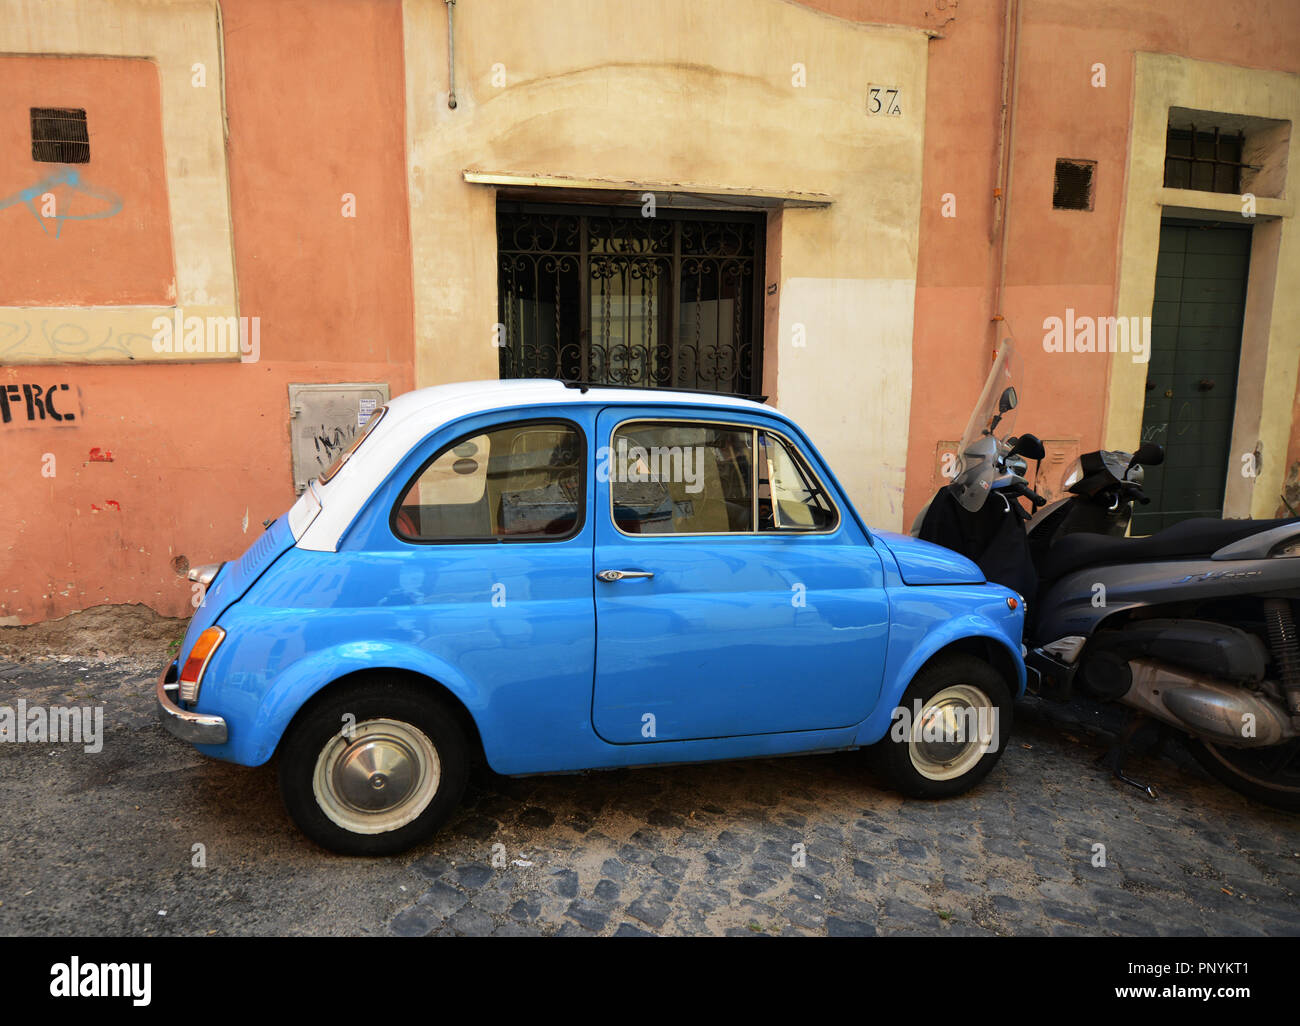 An Old Fiat 500 Car In Rome Italy Stock Photo 220040465 Alamy